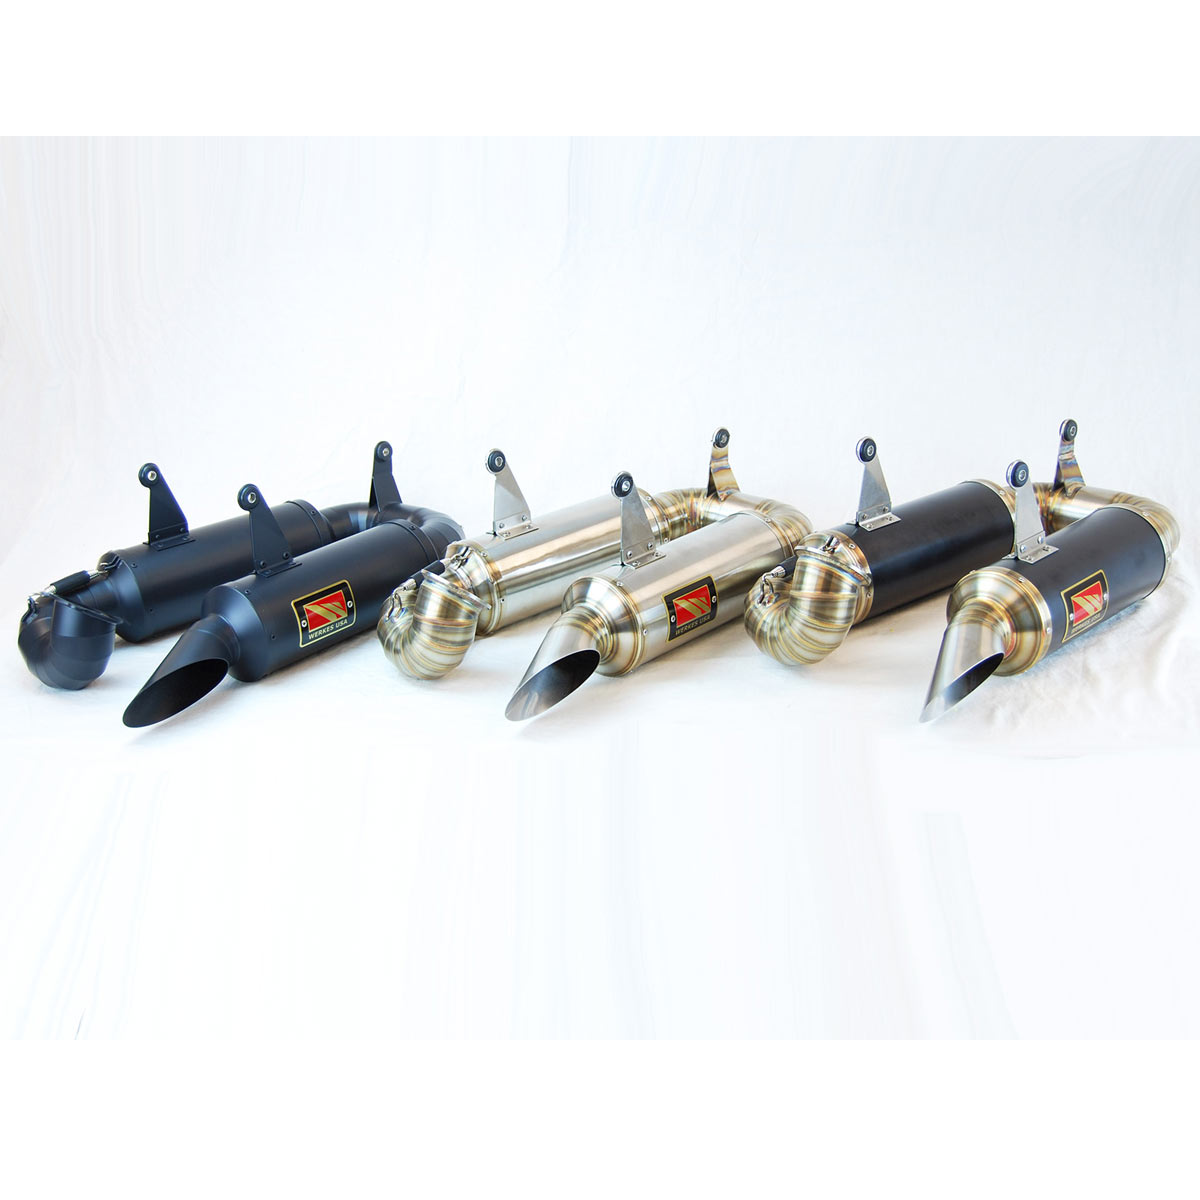 Competition Werkes Gp Slip On Exhaust For Panigale 959 16 Honda Cbr600rr Series M 2 Carbon Fiber Canister Hitam